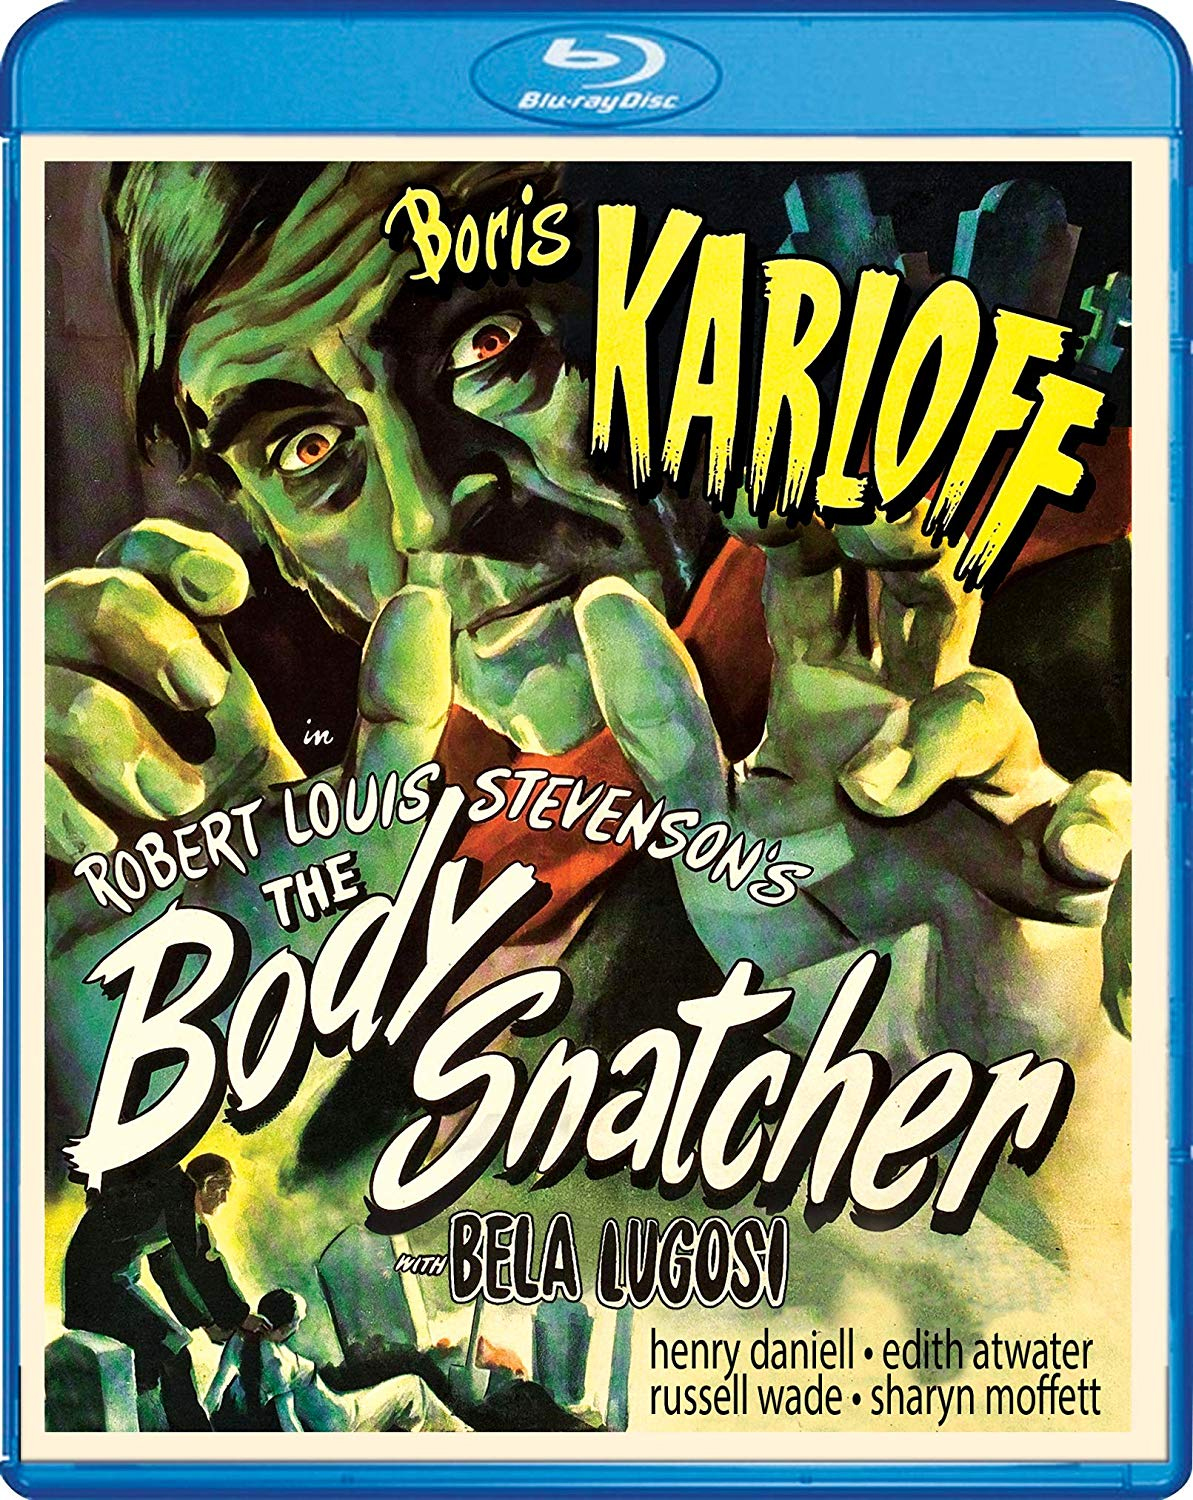 Mike's Picks: 'The Body Snatcher' and 'Road to Utopia'